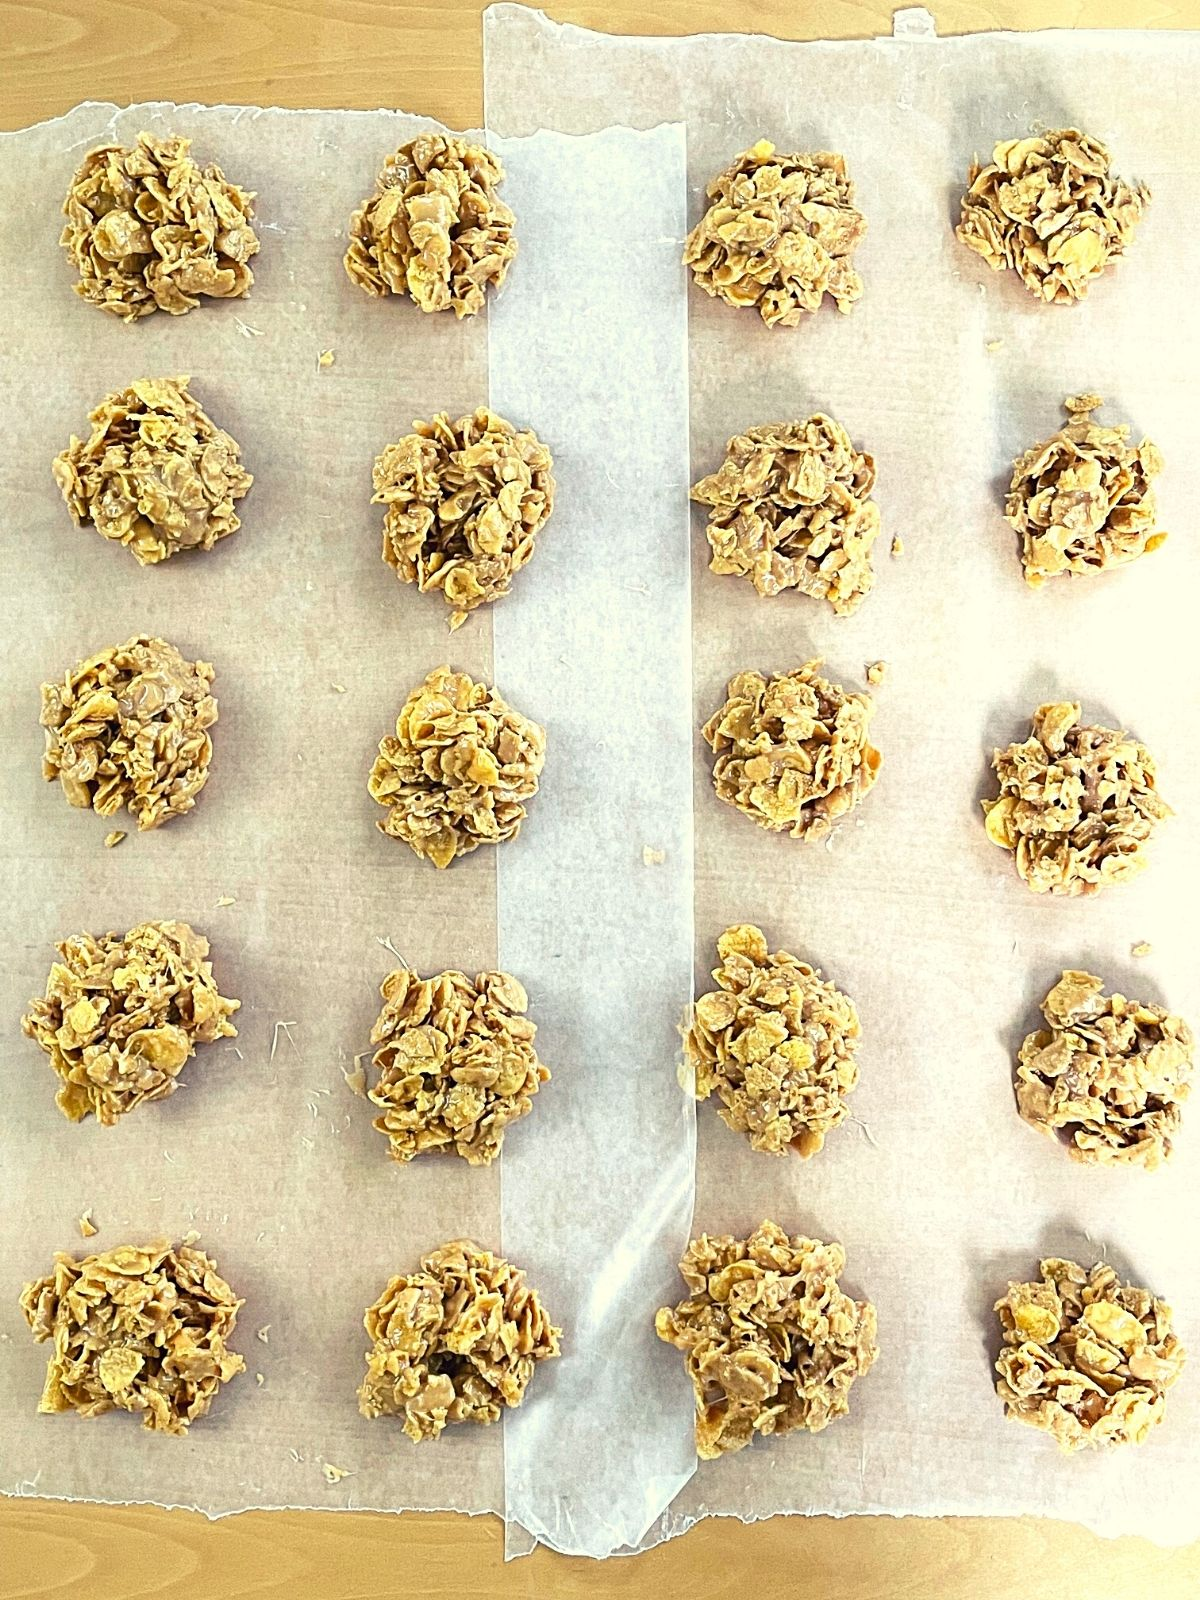 cornflake cookies cooling on wax paper.